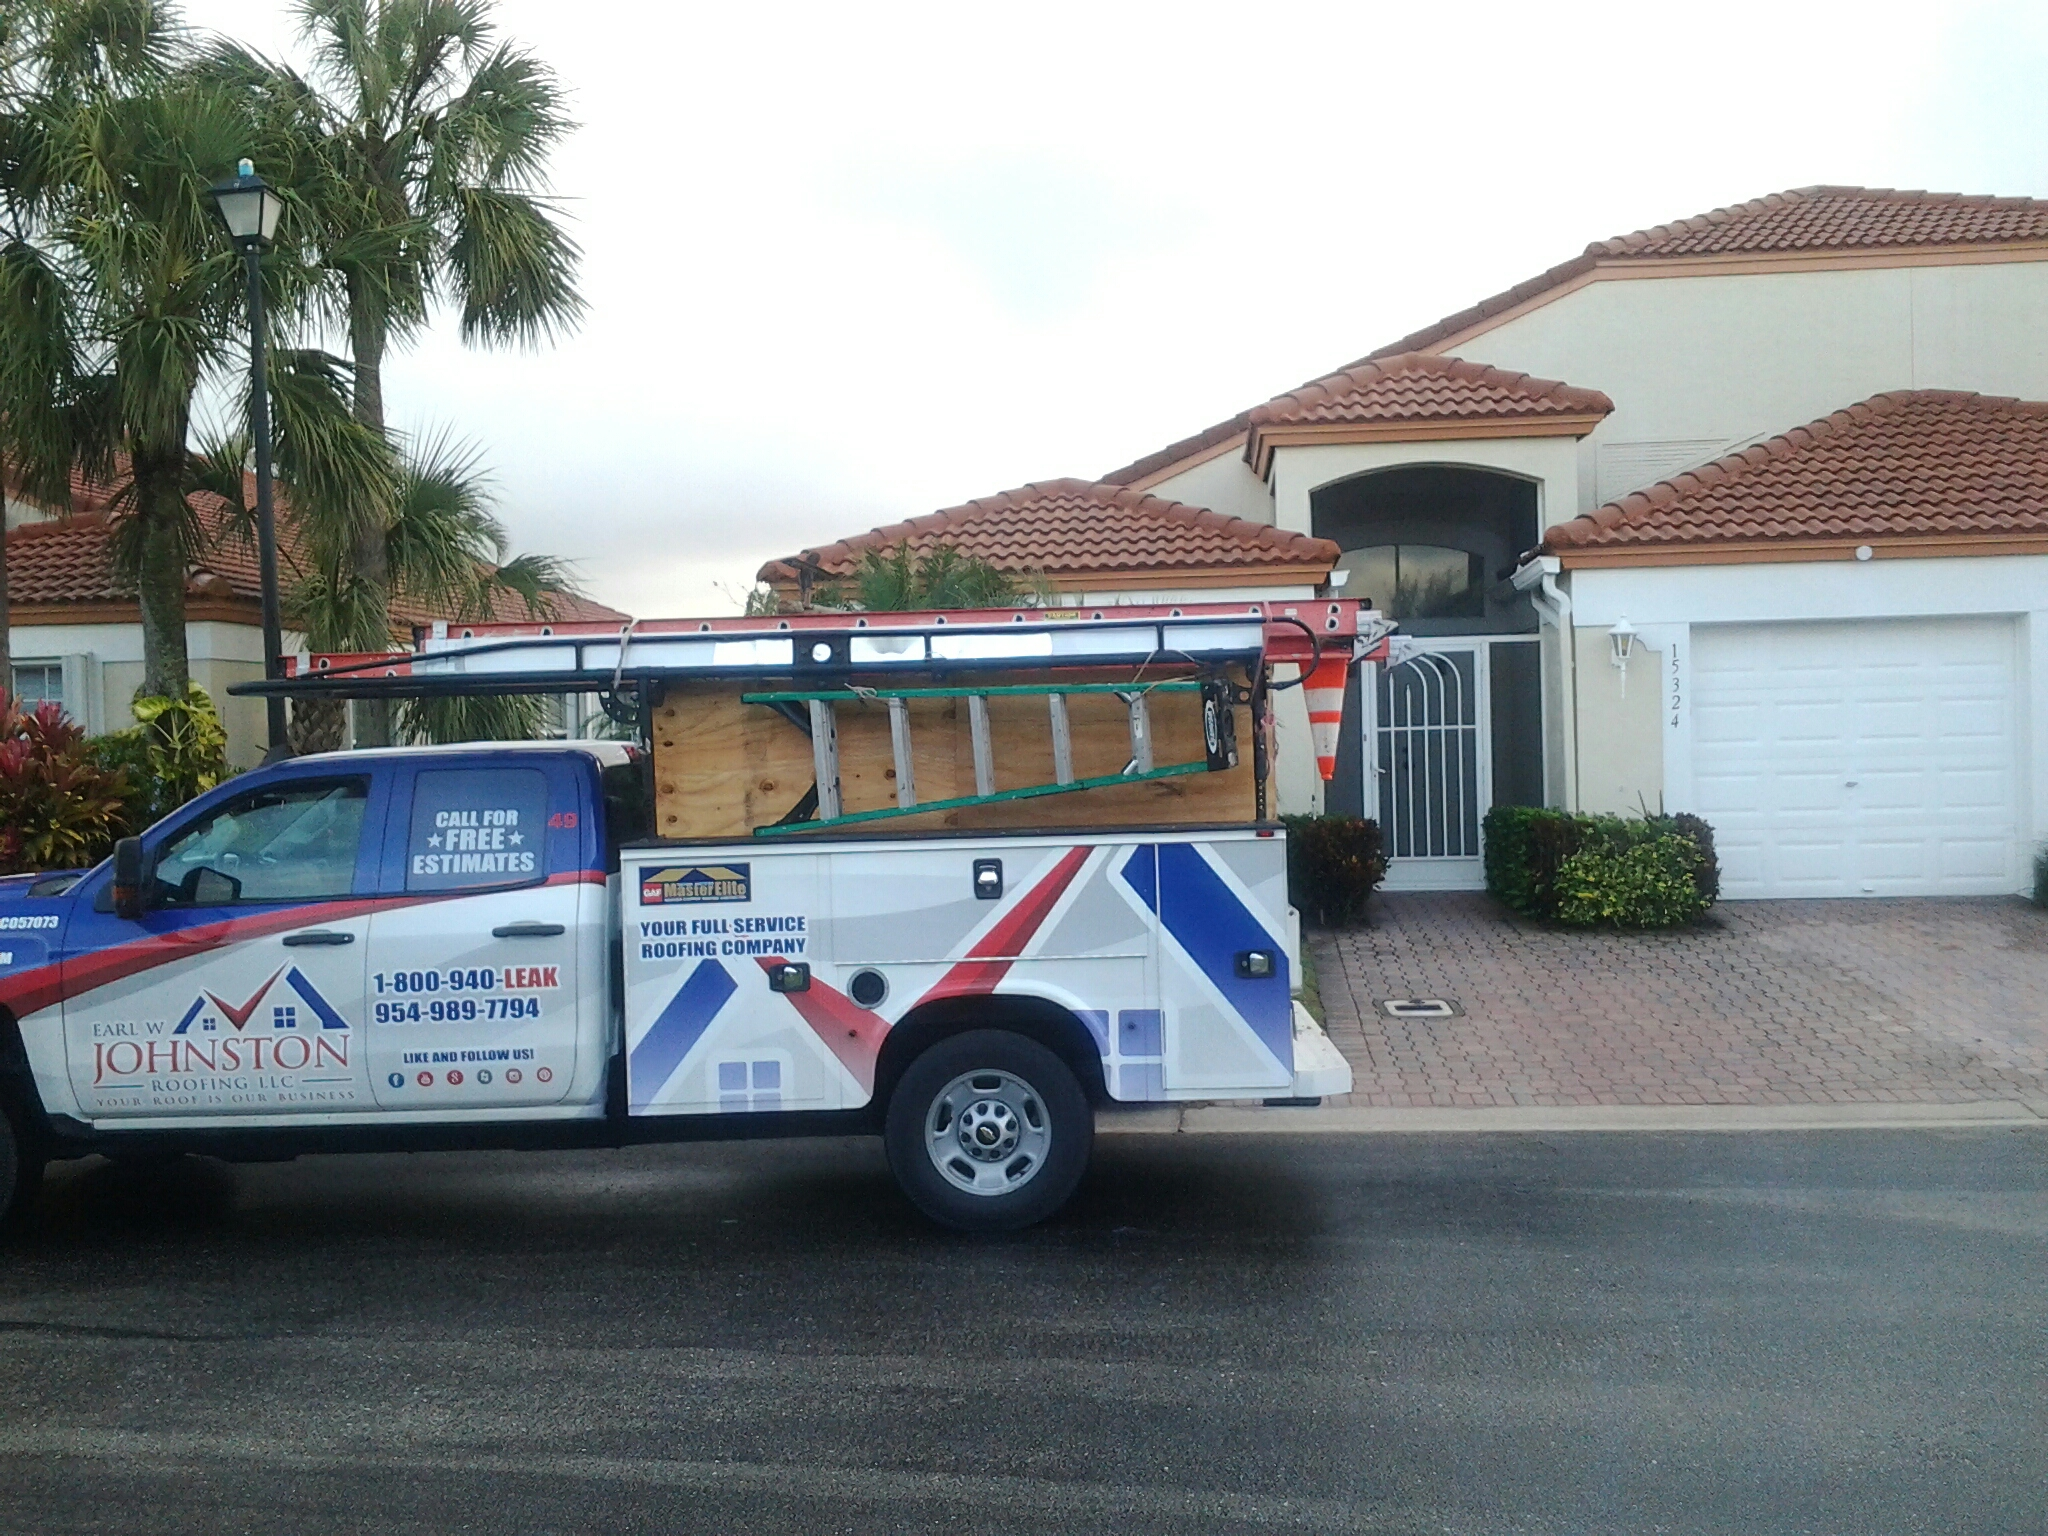 Delray Beach, FL - Tile roof repair in the city of Delray Beach fl this repair is being done by Earl w Johnston roofing company Jos? Deaune end Nathaniel